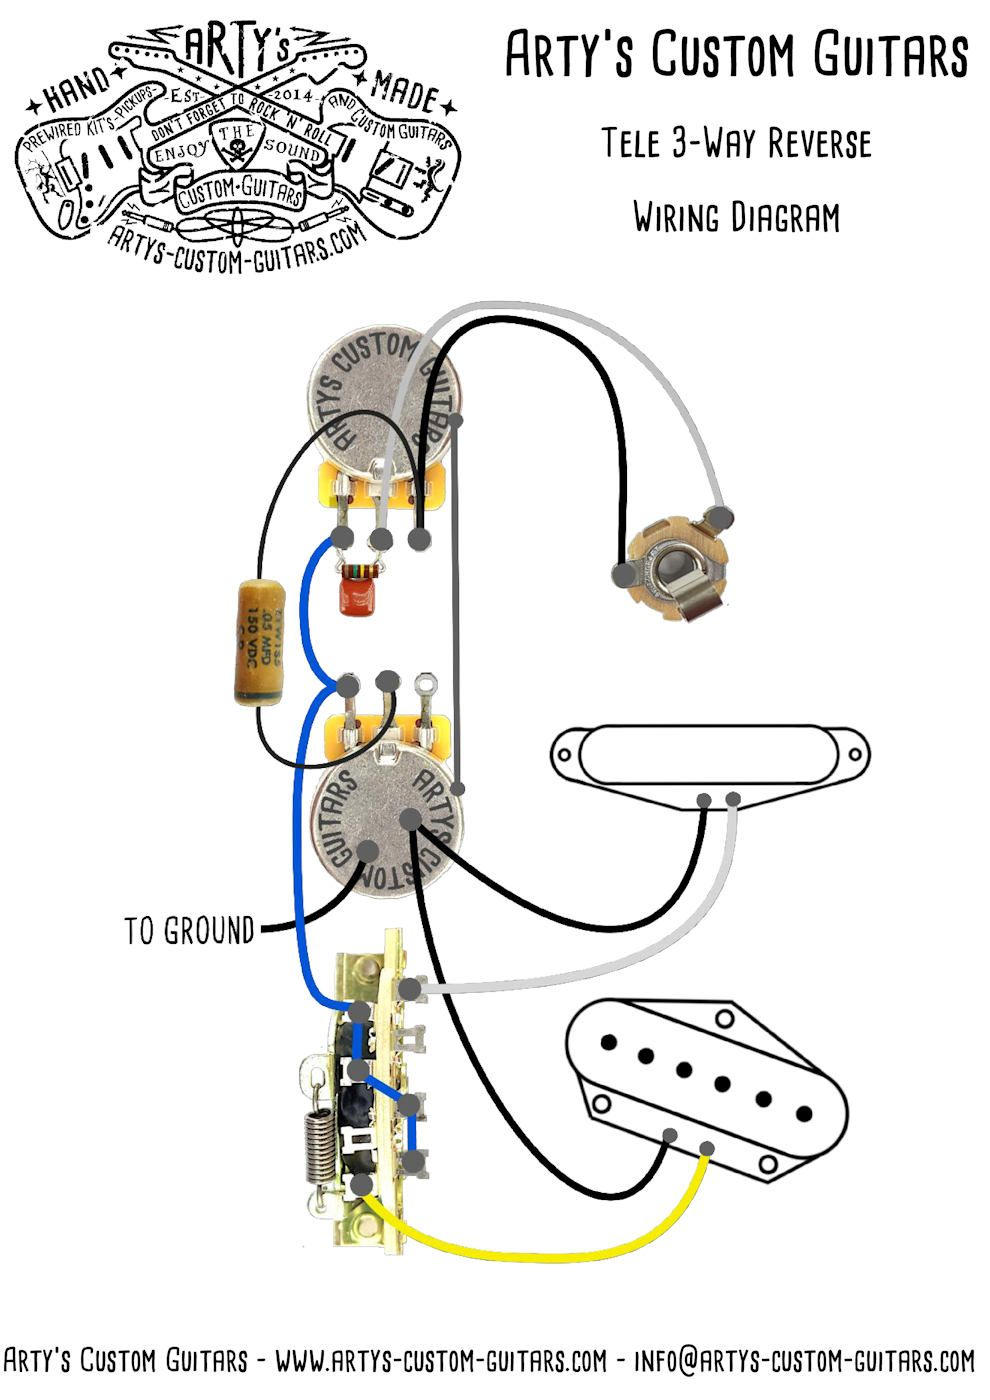 small resolution of telecaster 3 way reverse wiring diagram arty s custom guitars